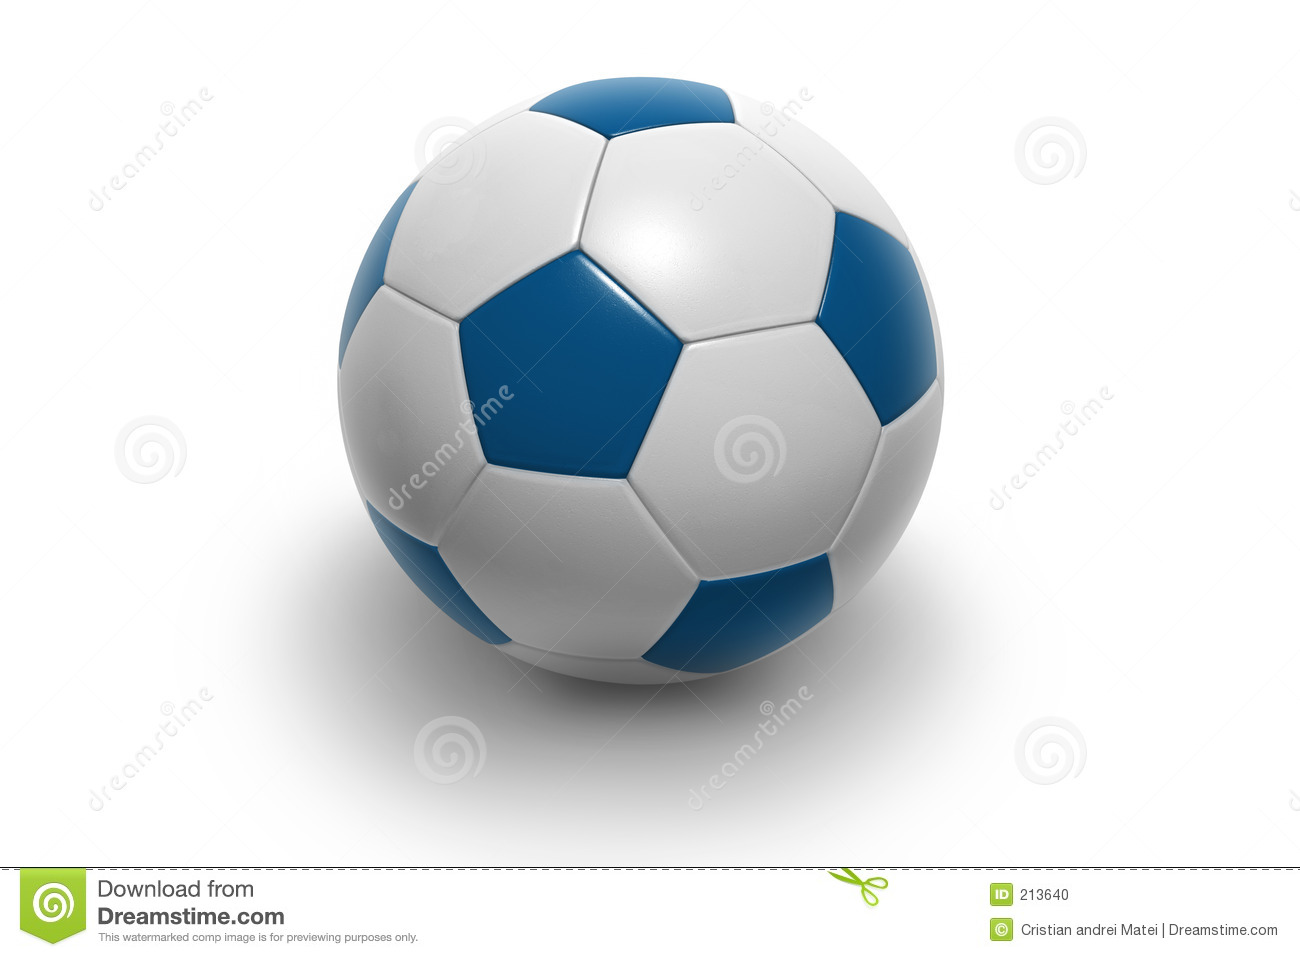 Calcio ball6